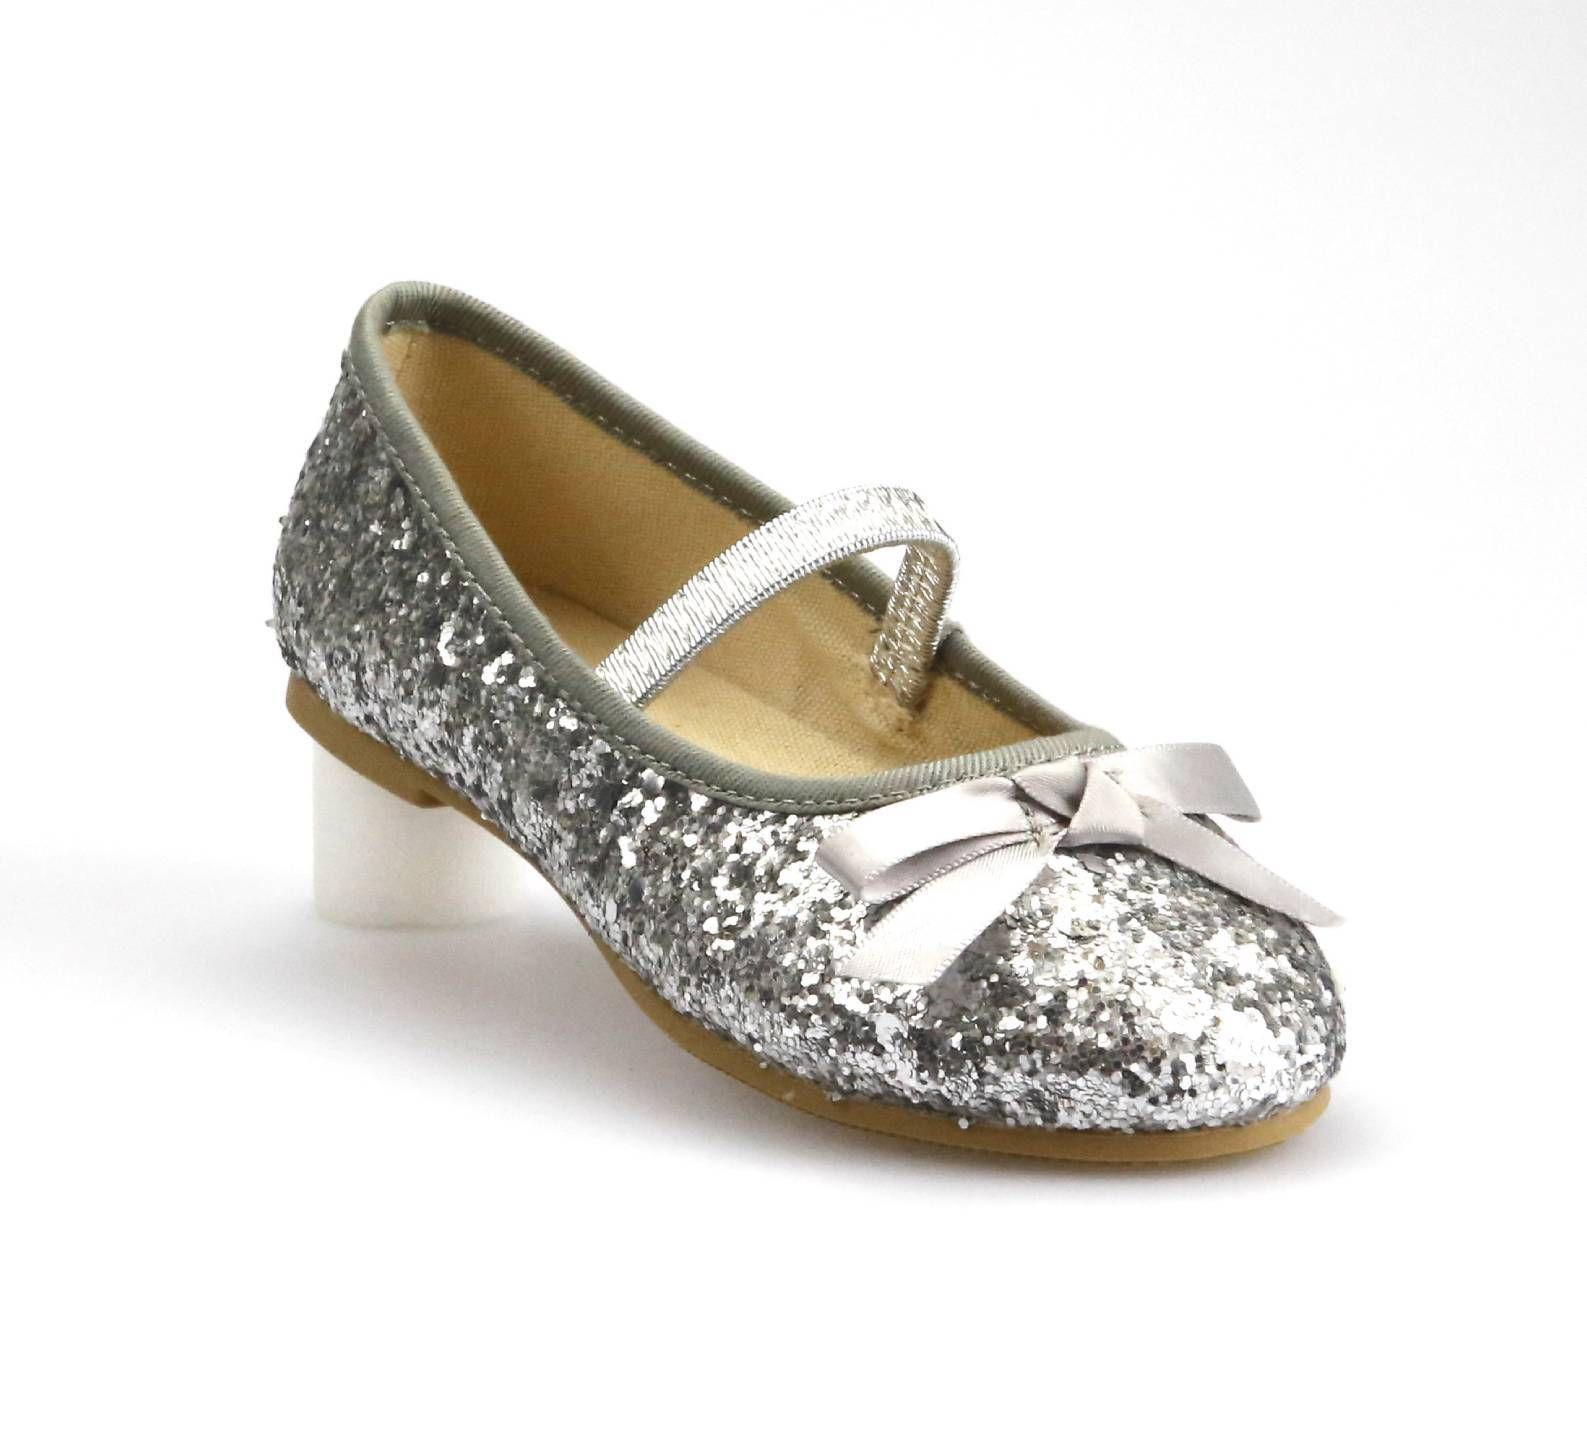 Youth 1 Girls Super Cute Dress Dancing Shoes Silver Sparkly Glitter